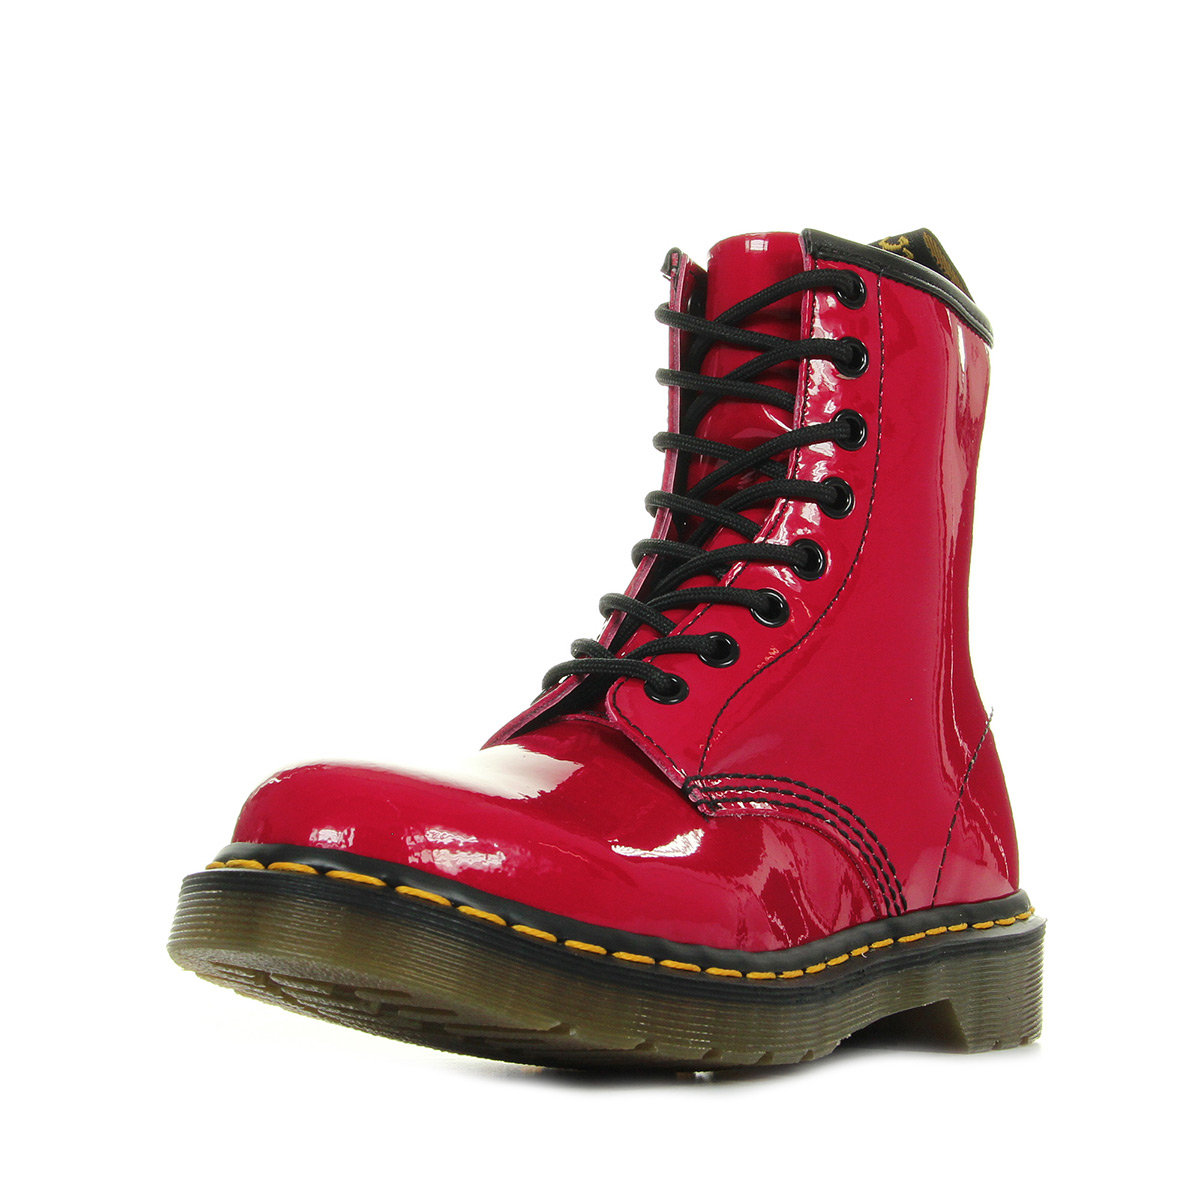 bottes doc martens rouge dr martens 1460 bottes mixte. Black Bedroom Furniture Sets. Home Design Ideas